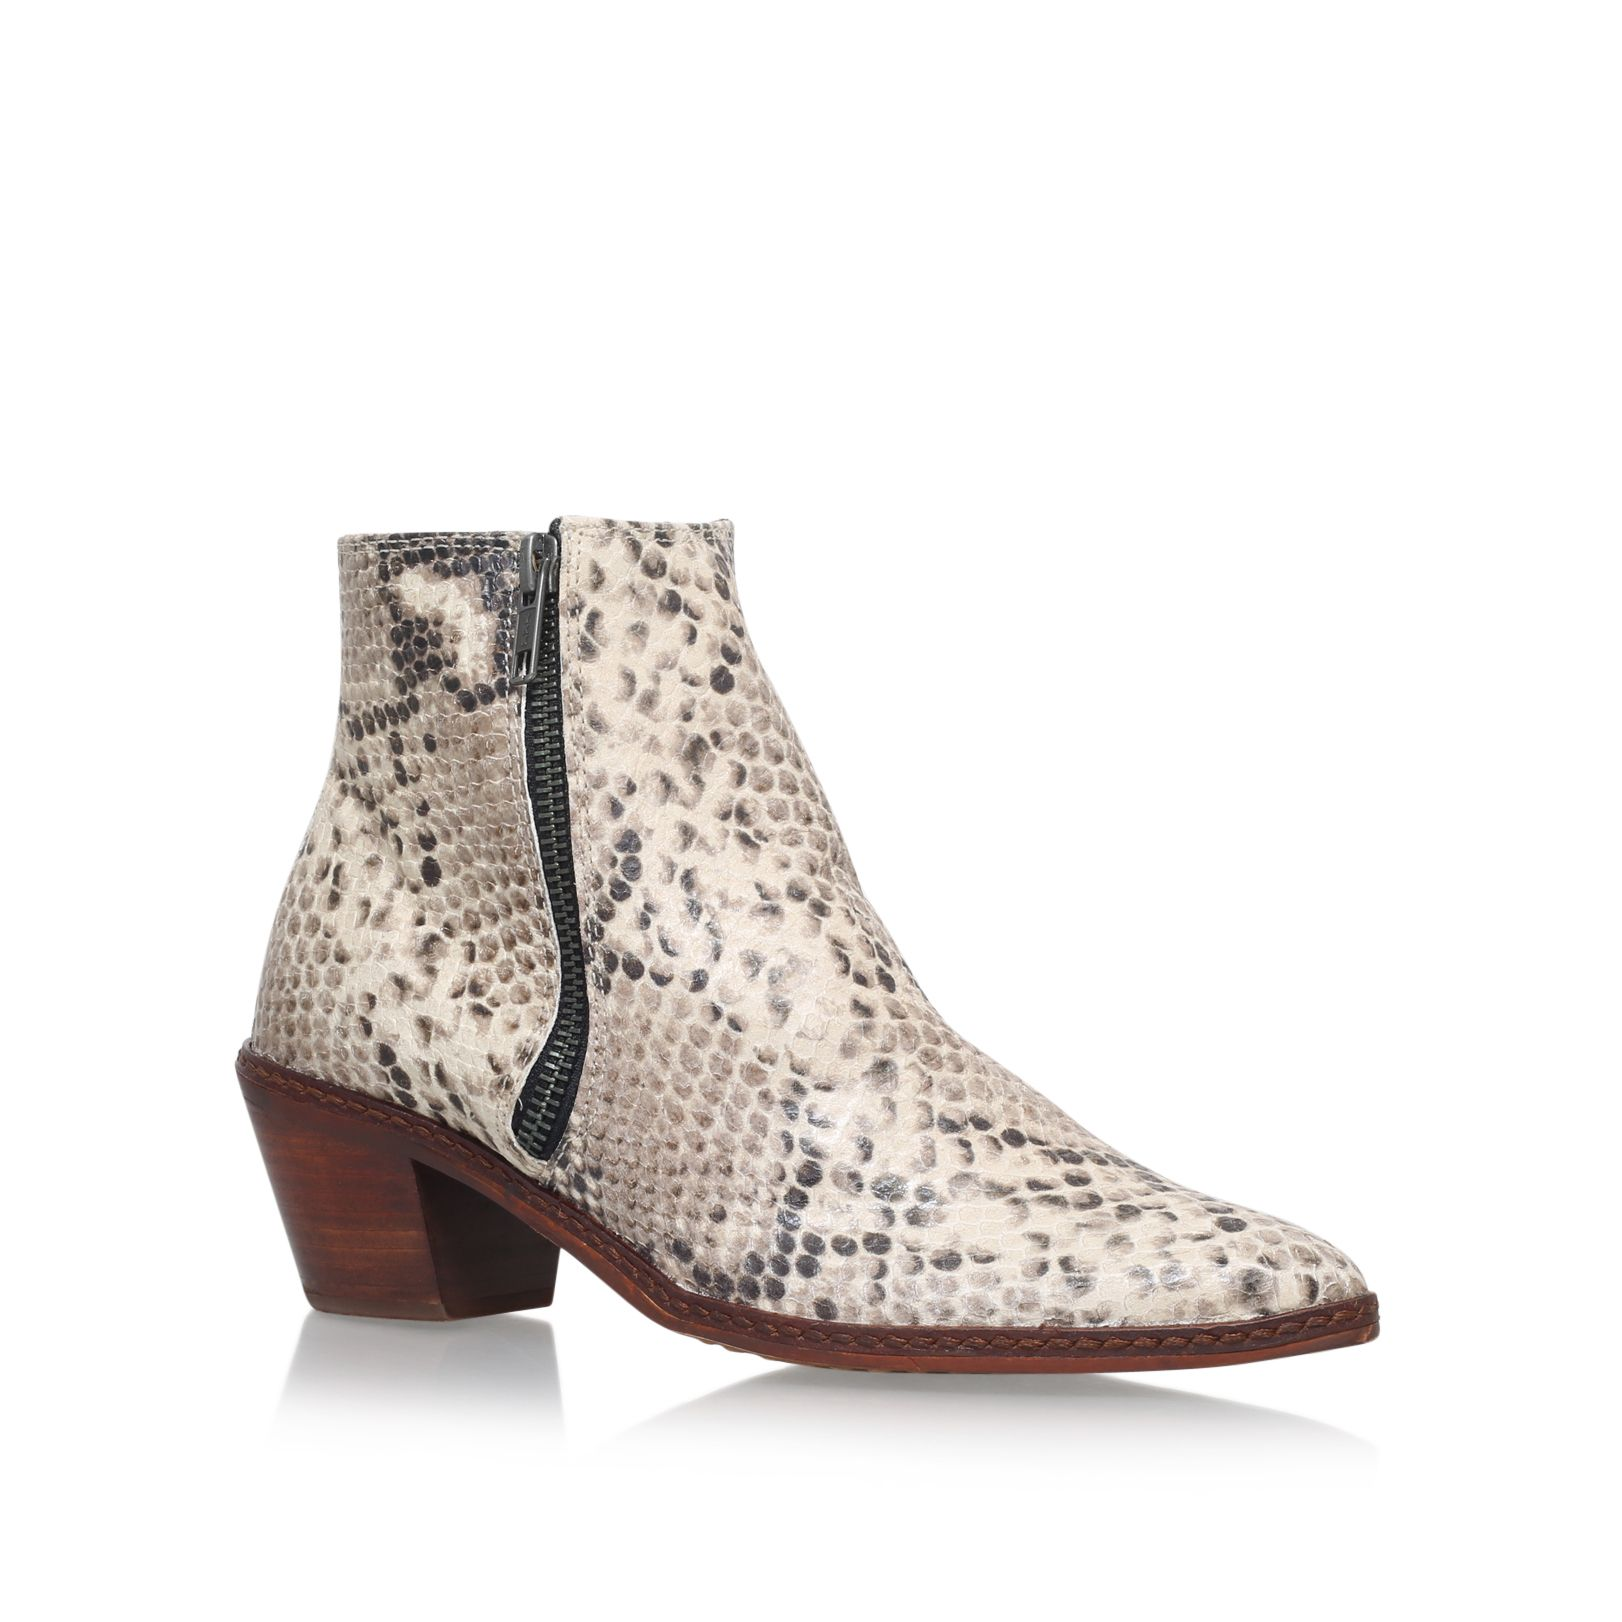 H by Hudson Azi mid block heel ankle boots Beige